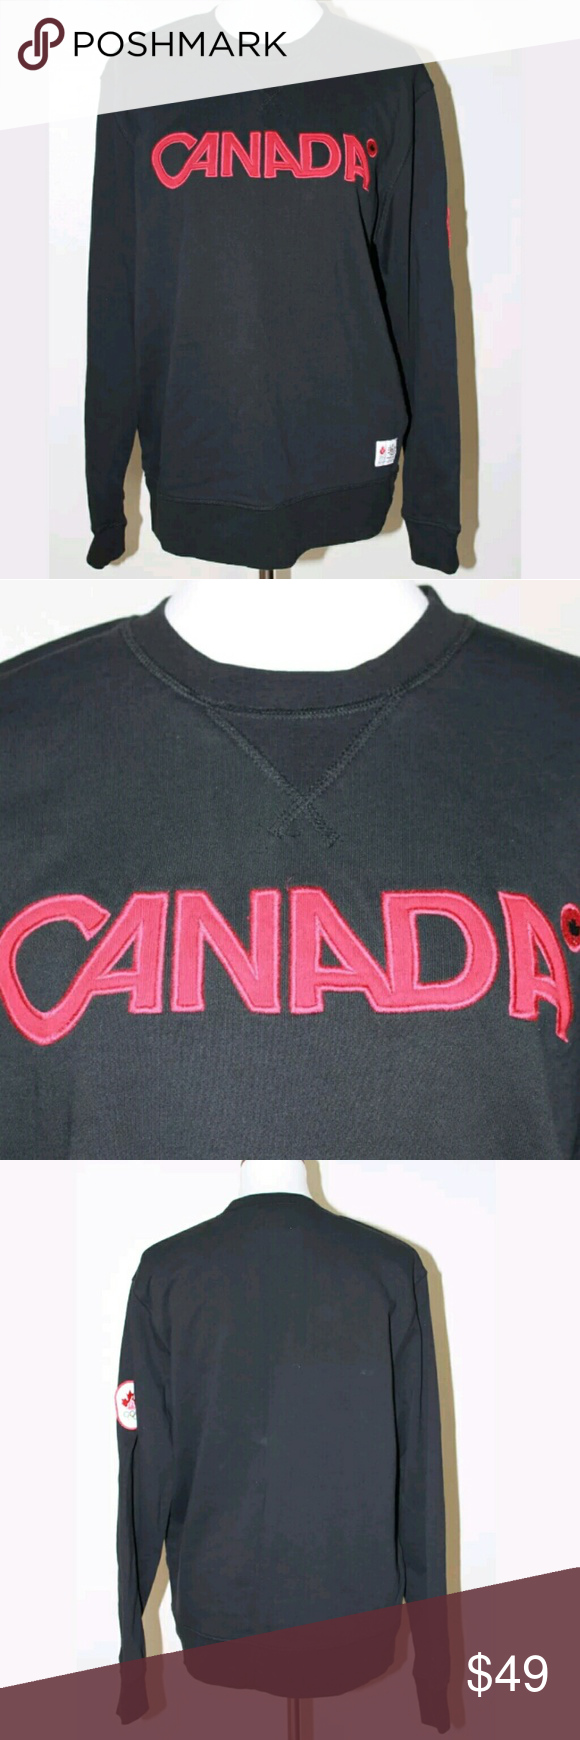 20def699e Vancouver 2010 Winter Olympic Canada Sweatshirt Vancouver 2010 Winter  Olympic Black Canada Sweatshirt New without tags